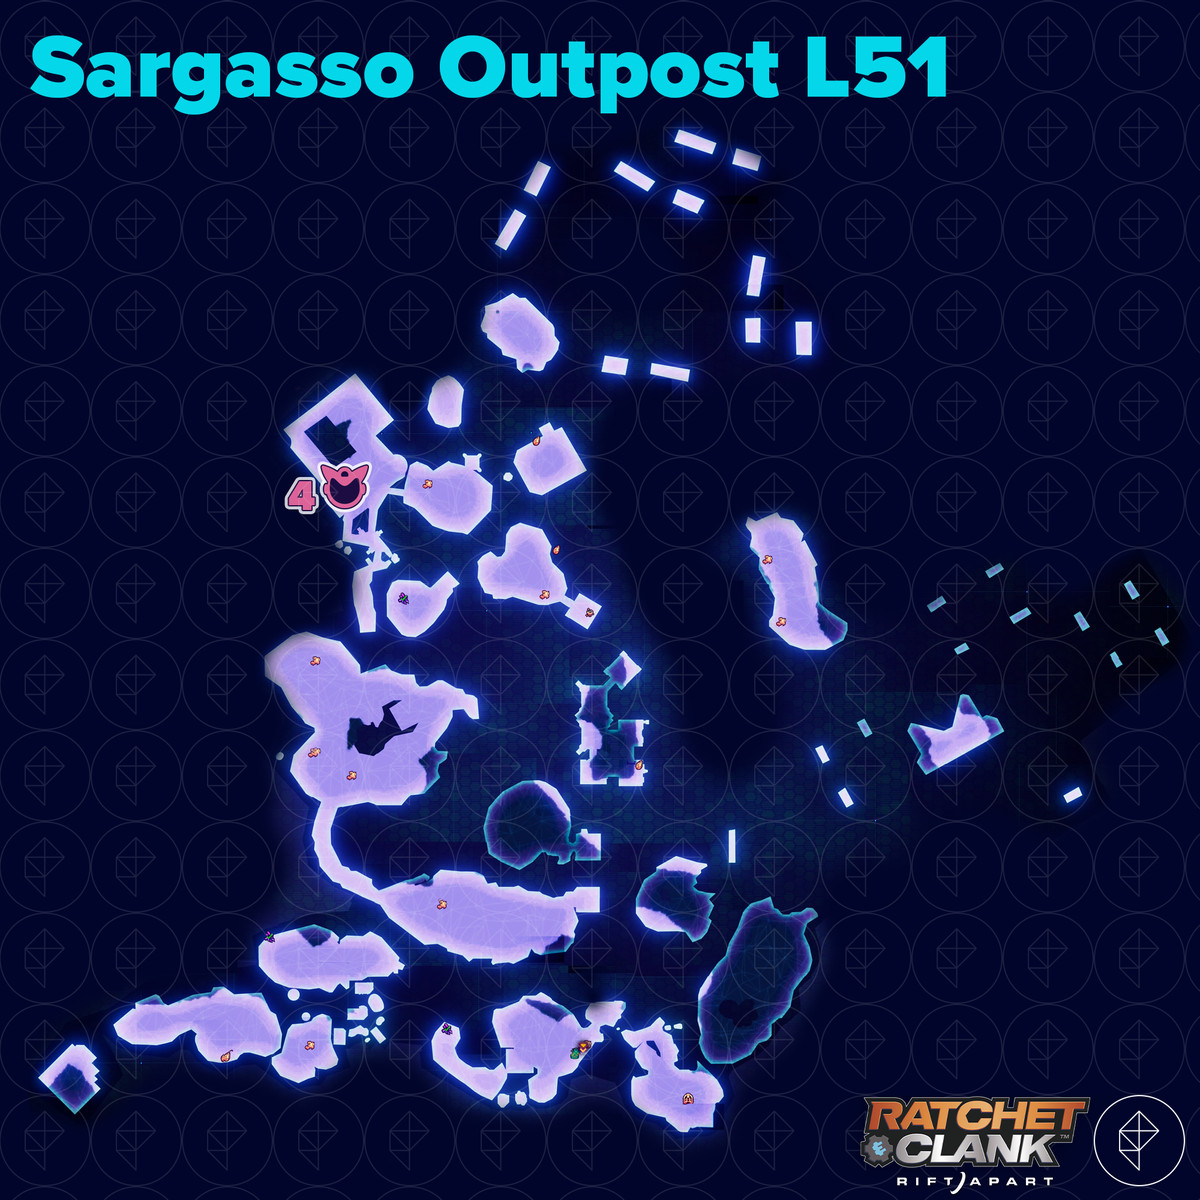 Ratchet & Clank: Rift Apart collectibles guide: Sargasso Outpost L51